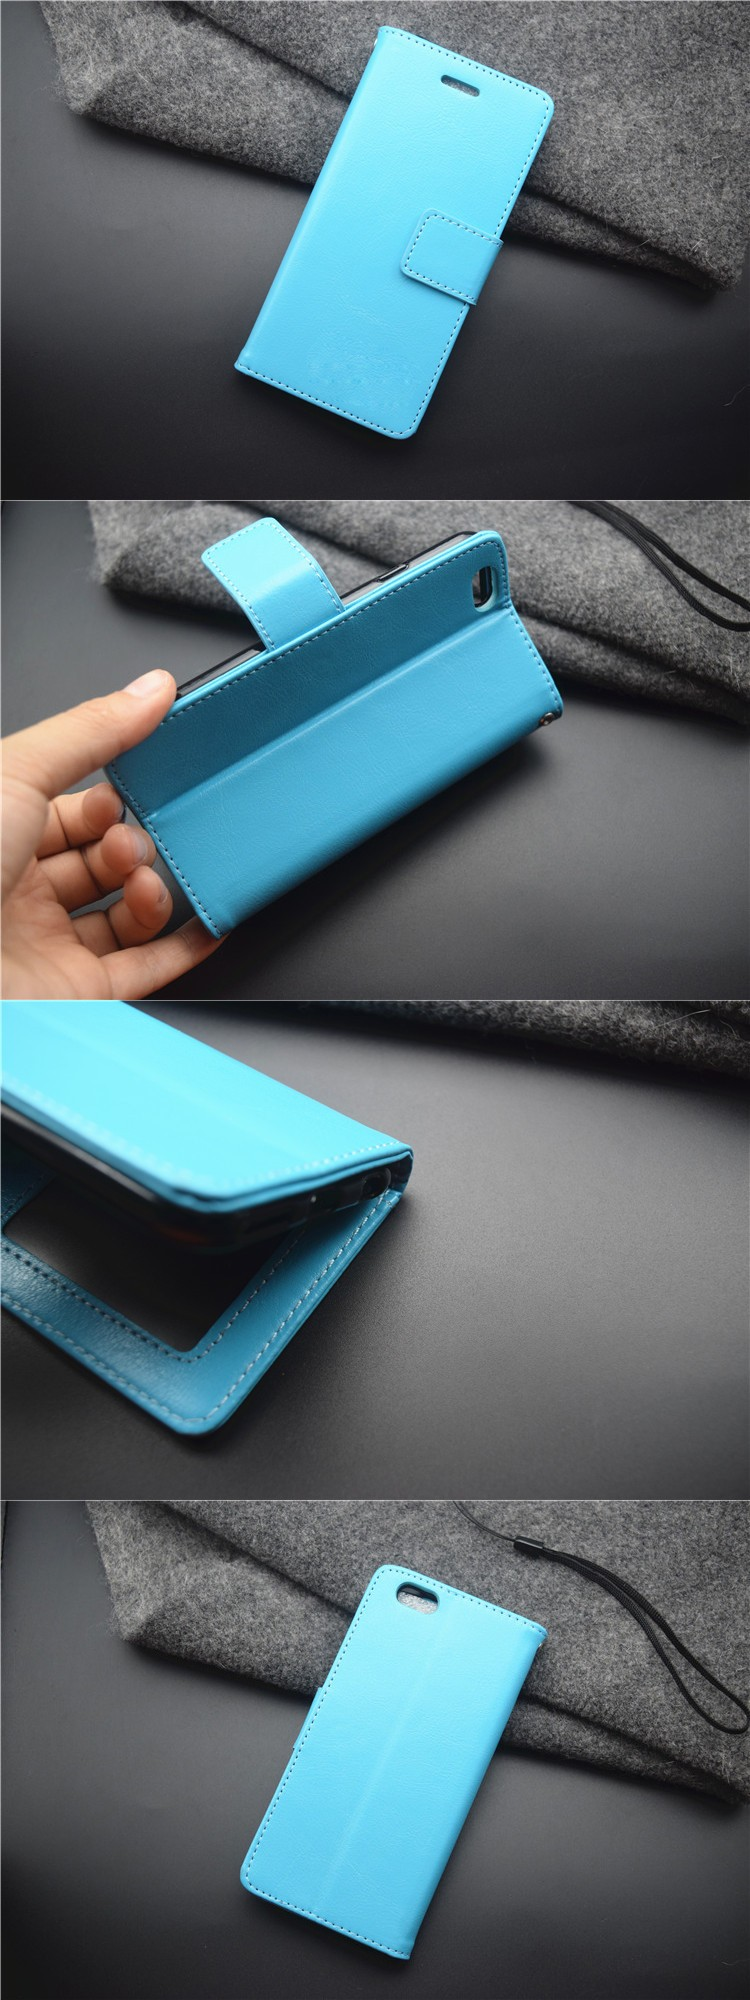 Flip Cover For Gionee M5,Luxury Factory Price For Pu Leather ...